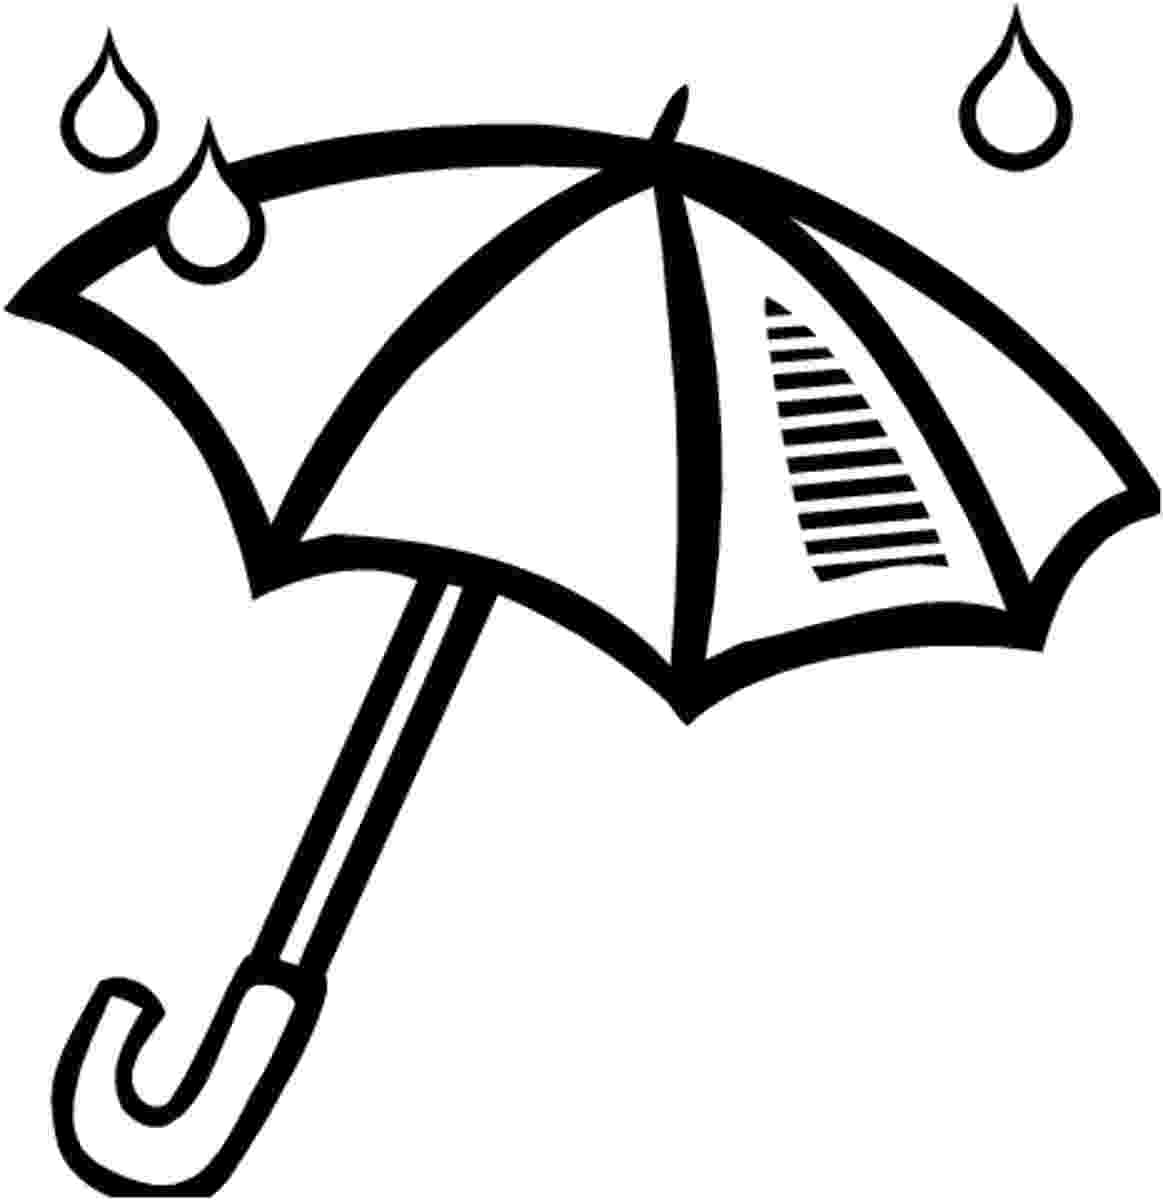 umbrella coloring page umbrella coloring pages for childrens printable for free umbrella coloring page 1 1